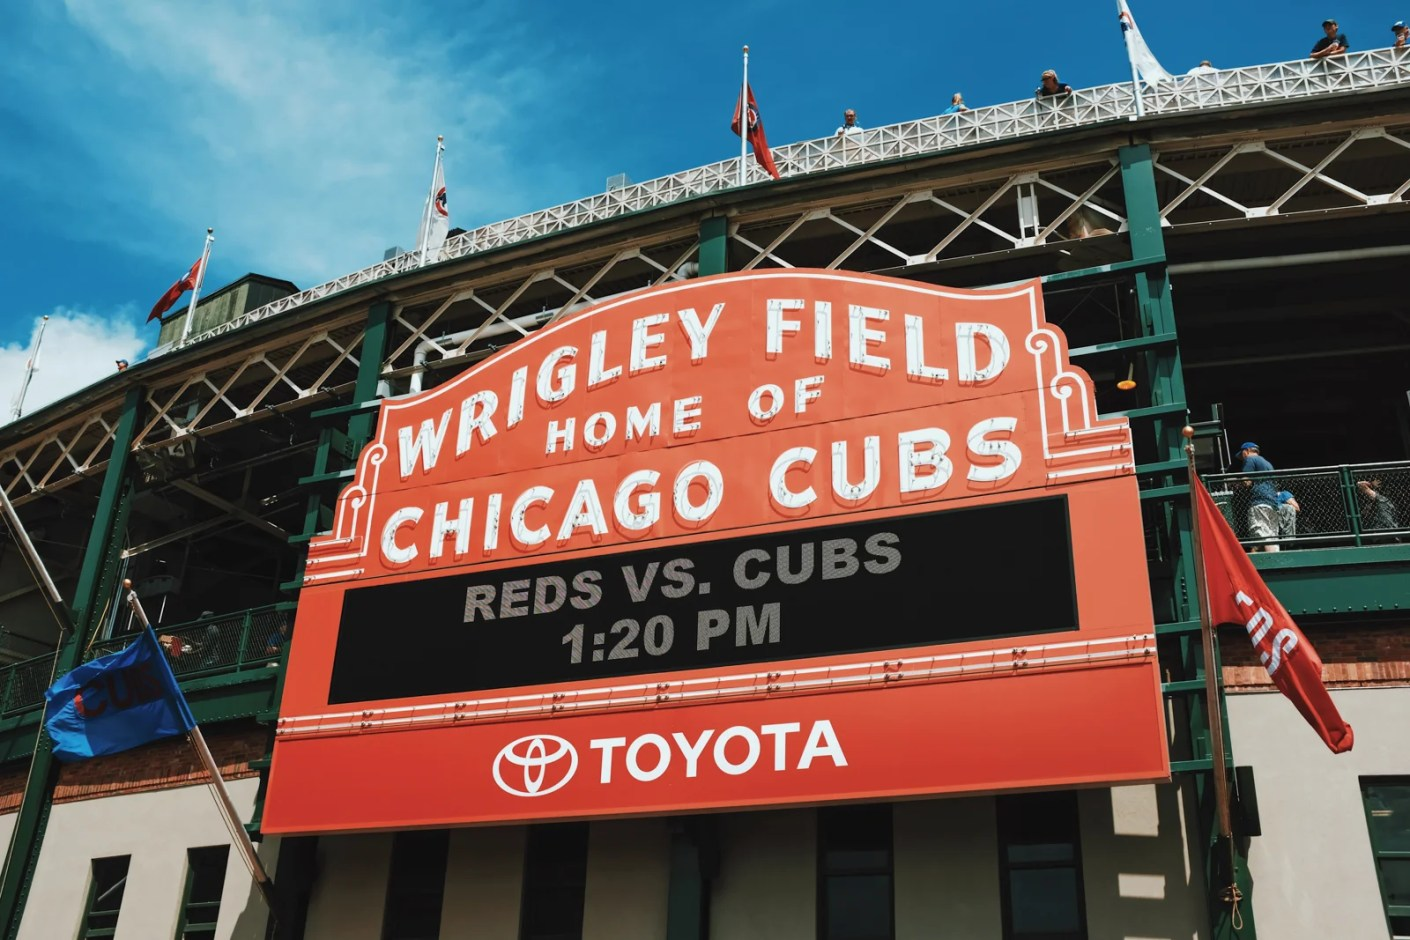 Wrigley Field, home of the Chicago Cubs. (Photo by Blake Guidry / Unsplash)